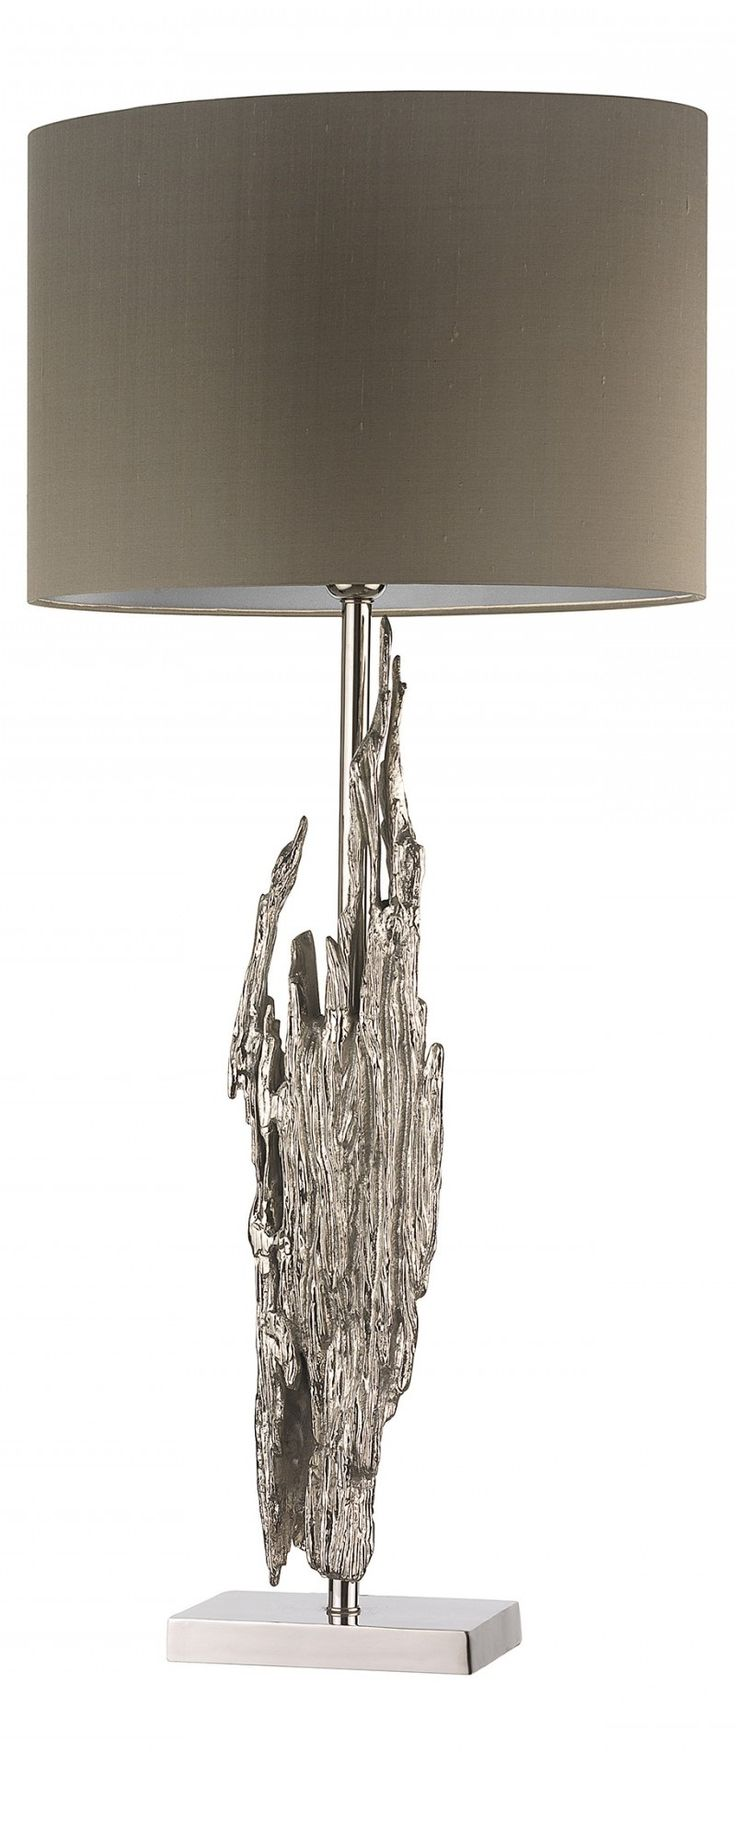 Best 20 Silver table lamps ideas on Pinterest Silver lamp